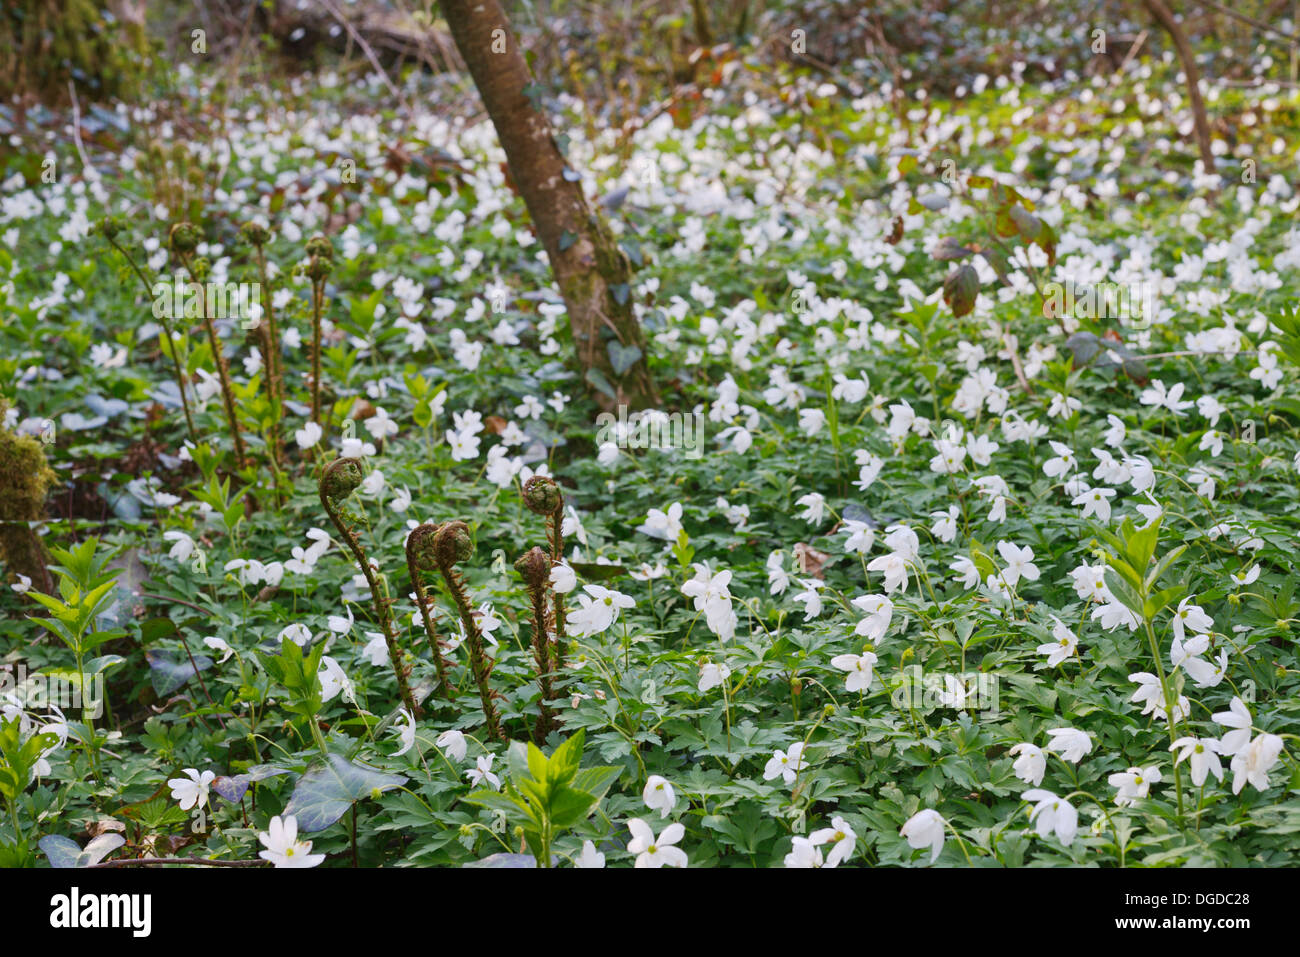 Anemone Nemorosa Cover The Ground In Ancient Woodland With Light